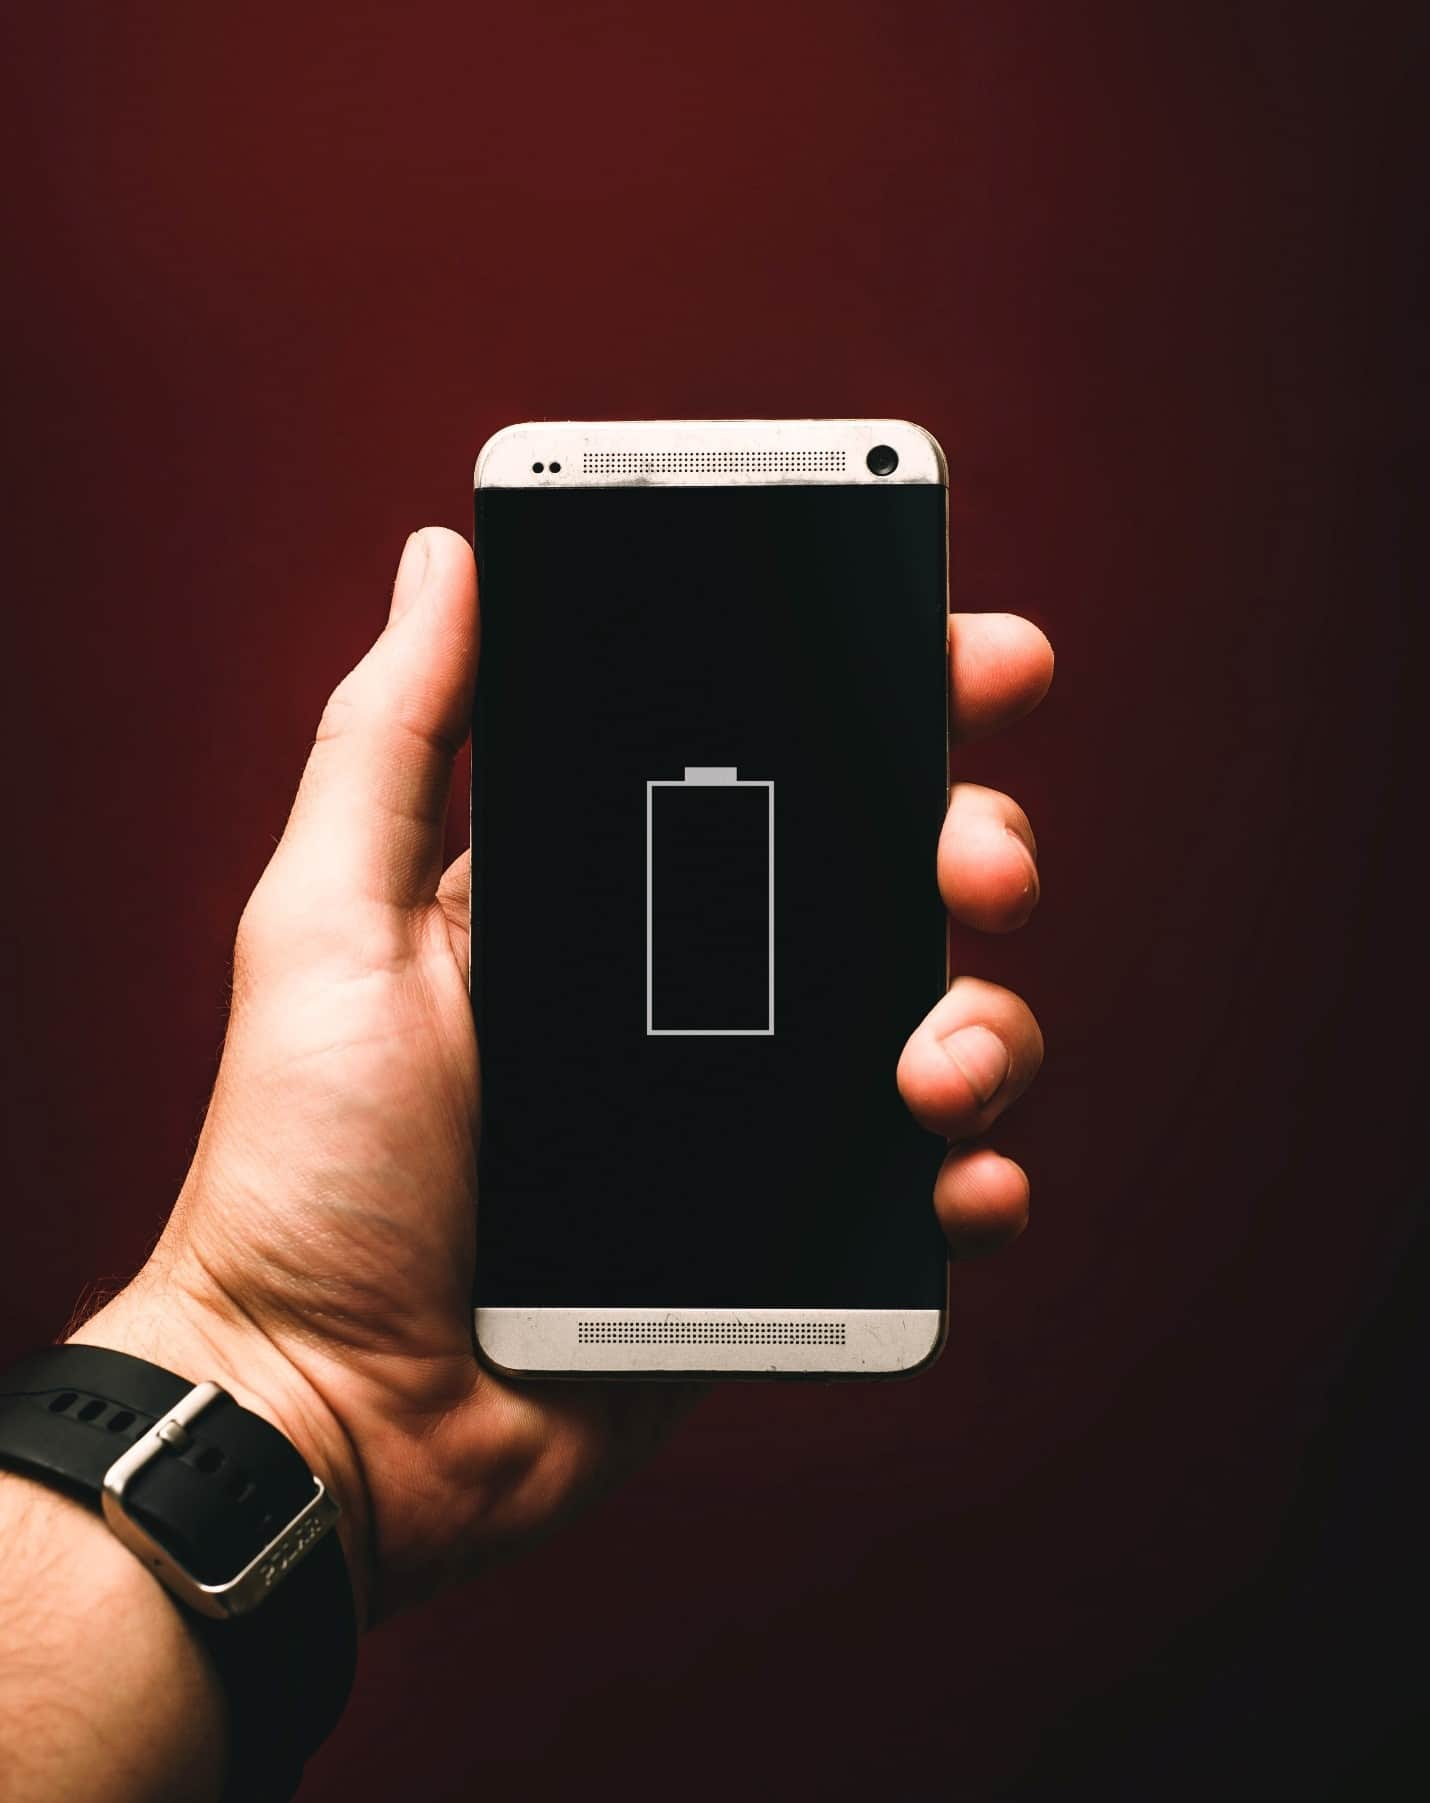 content/fi-fi/images/repository/isc/2020/9910/prolong-your-smartphone-battery-lifespan-1.jpg